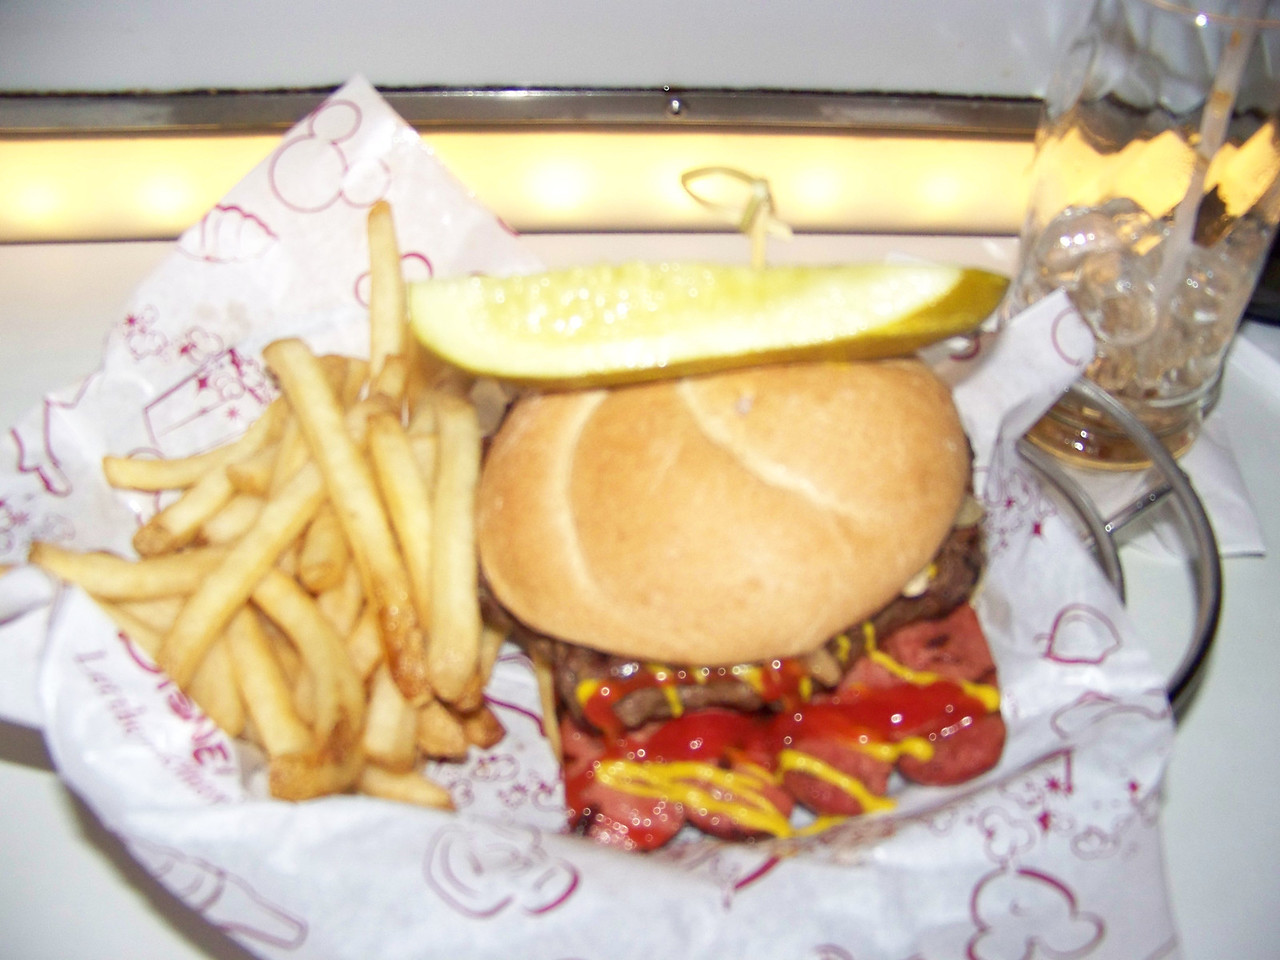 I had the All-American Picnic Burger at the Sci-Fi Dine-In Theater.  In addition to a hamburger patty,  it also includes two hotdogs that are split open lengthwise and grilled.  It tasted good, but there was too much meat for the bun, and it quickly fell apart.  I wound up eating the hotdogs separately with a fork.  I also had a delicious shake for dessert.<br /> [Disney's Hollywood Studios]